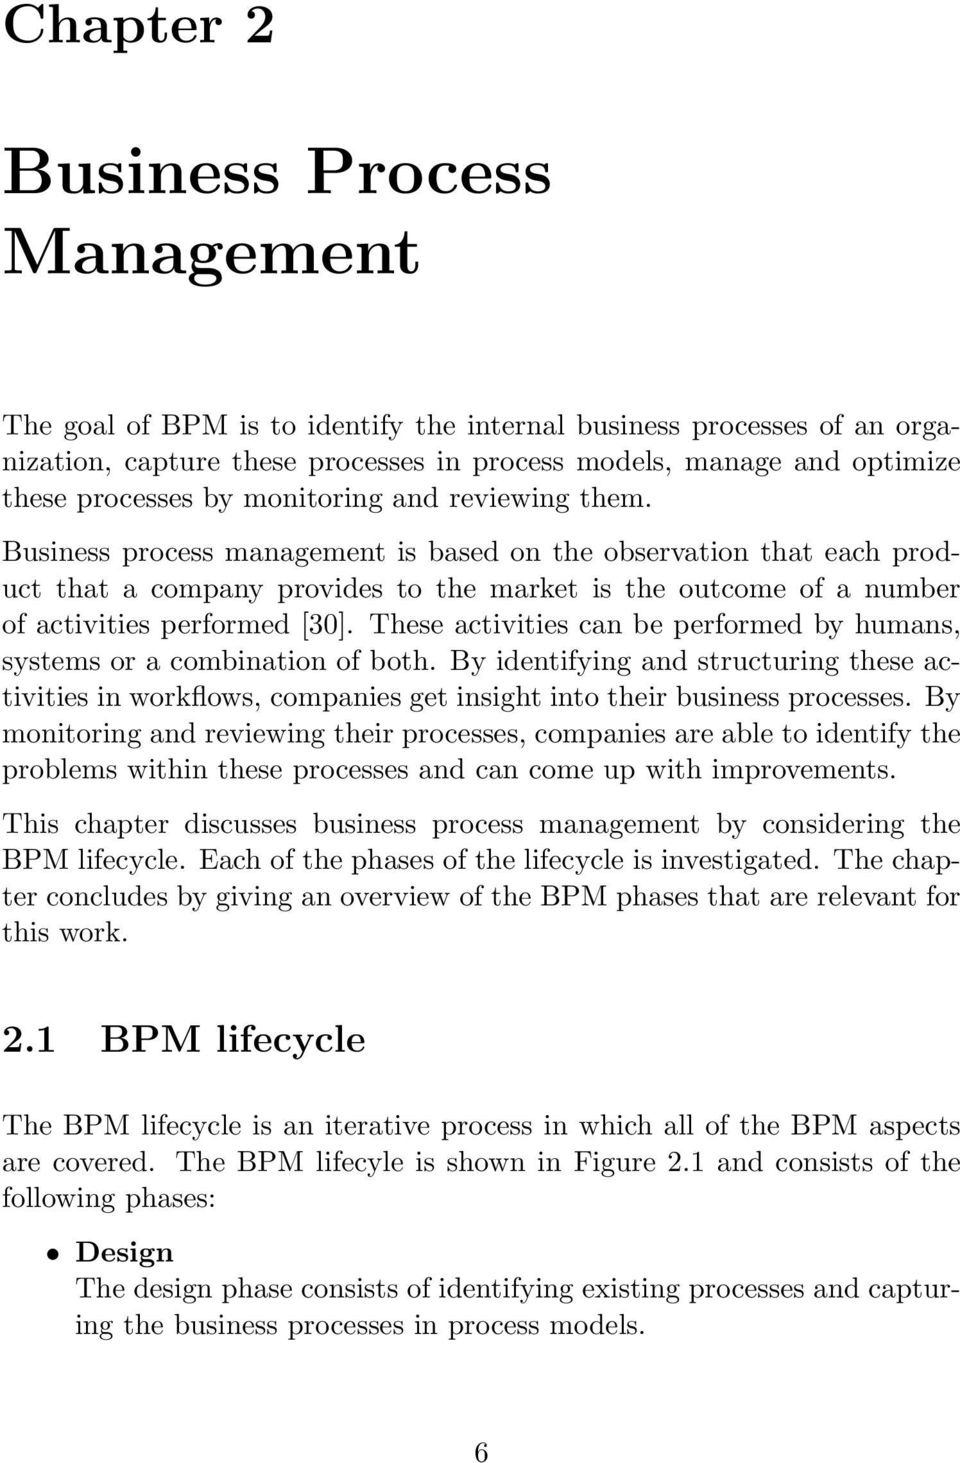 Business process management is based on the observation that each product that a company provides to the market is the outcome of a number of activities performed [30].